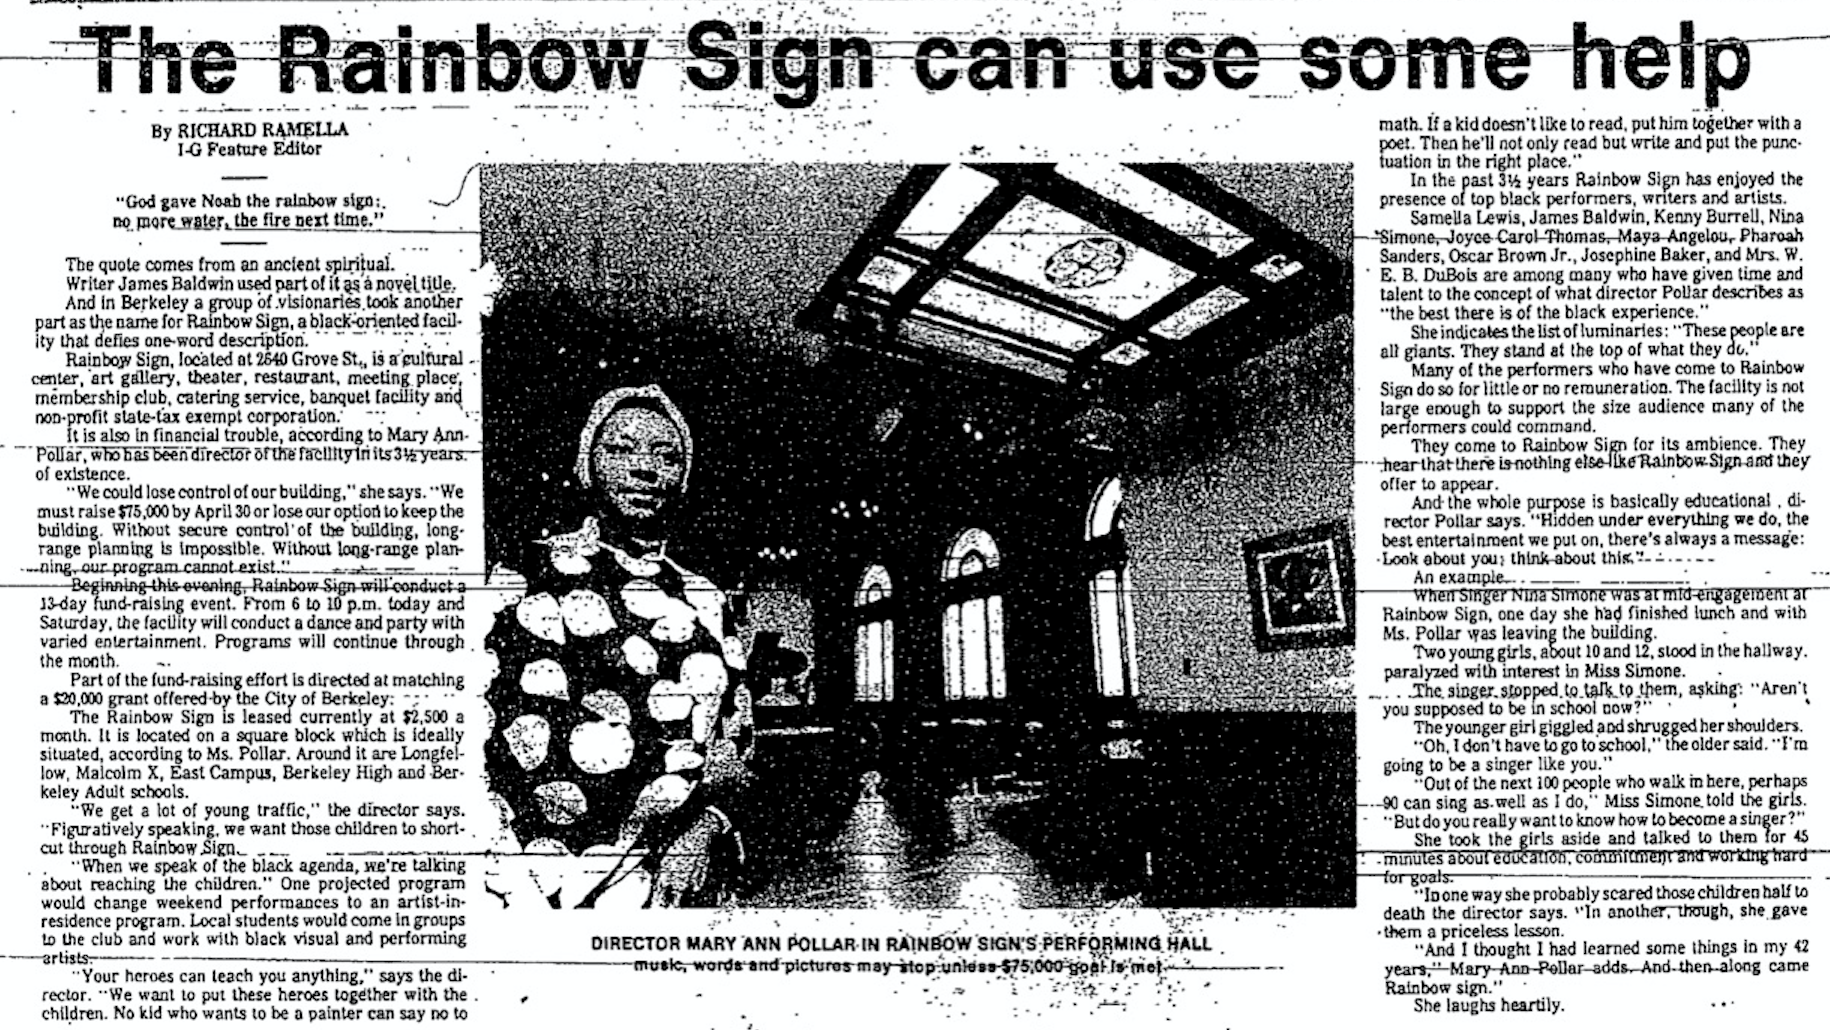 The Rainbow Sign Can Use Some Help